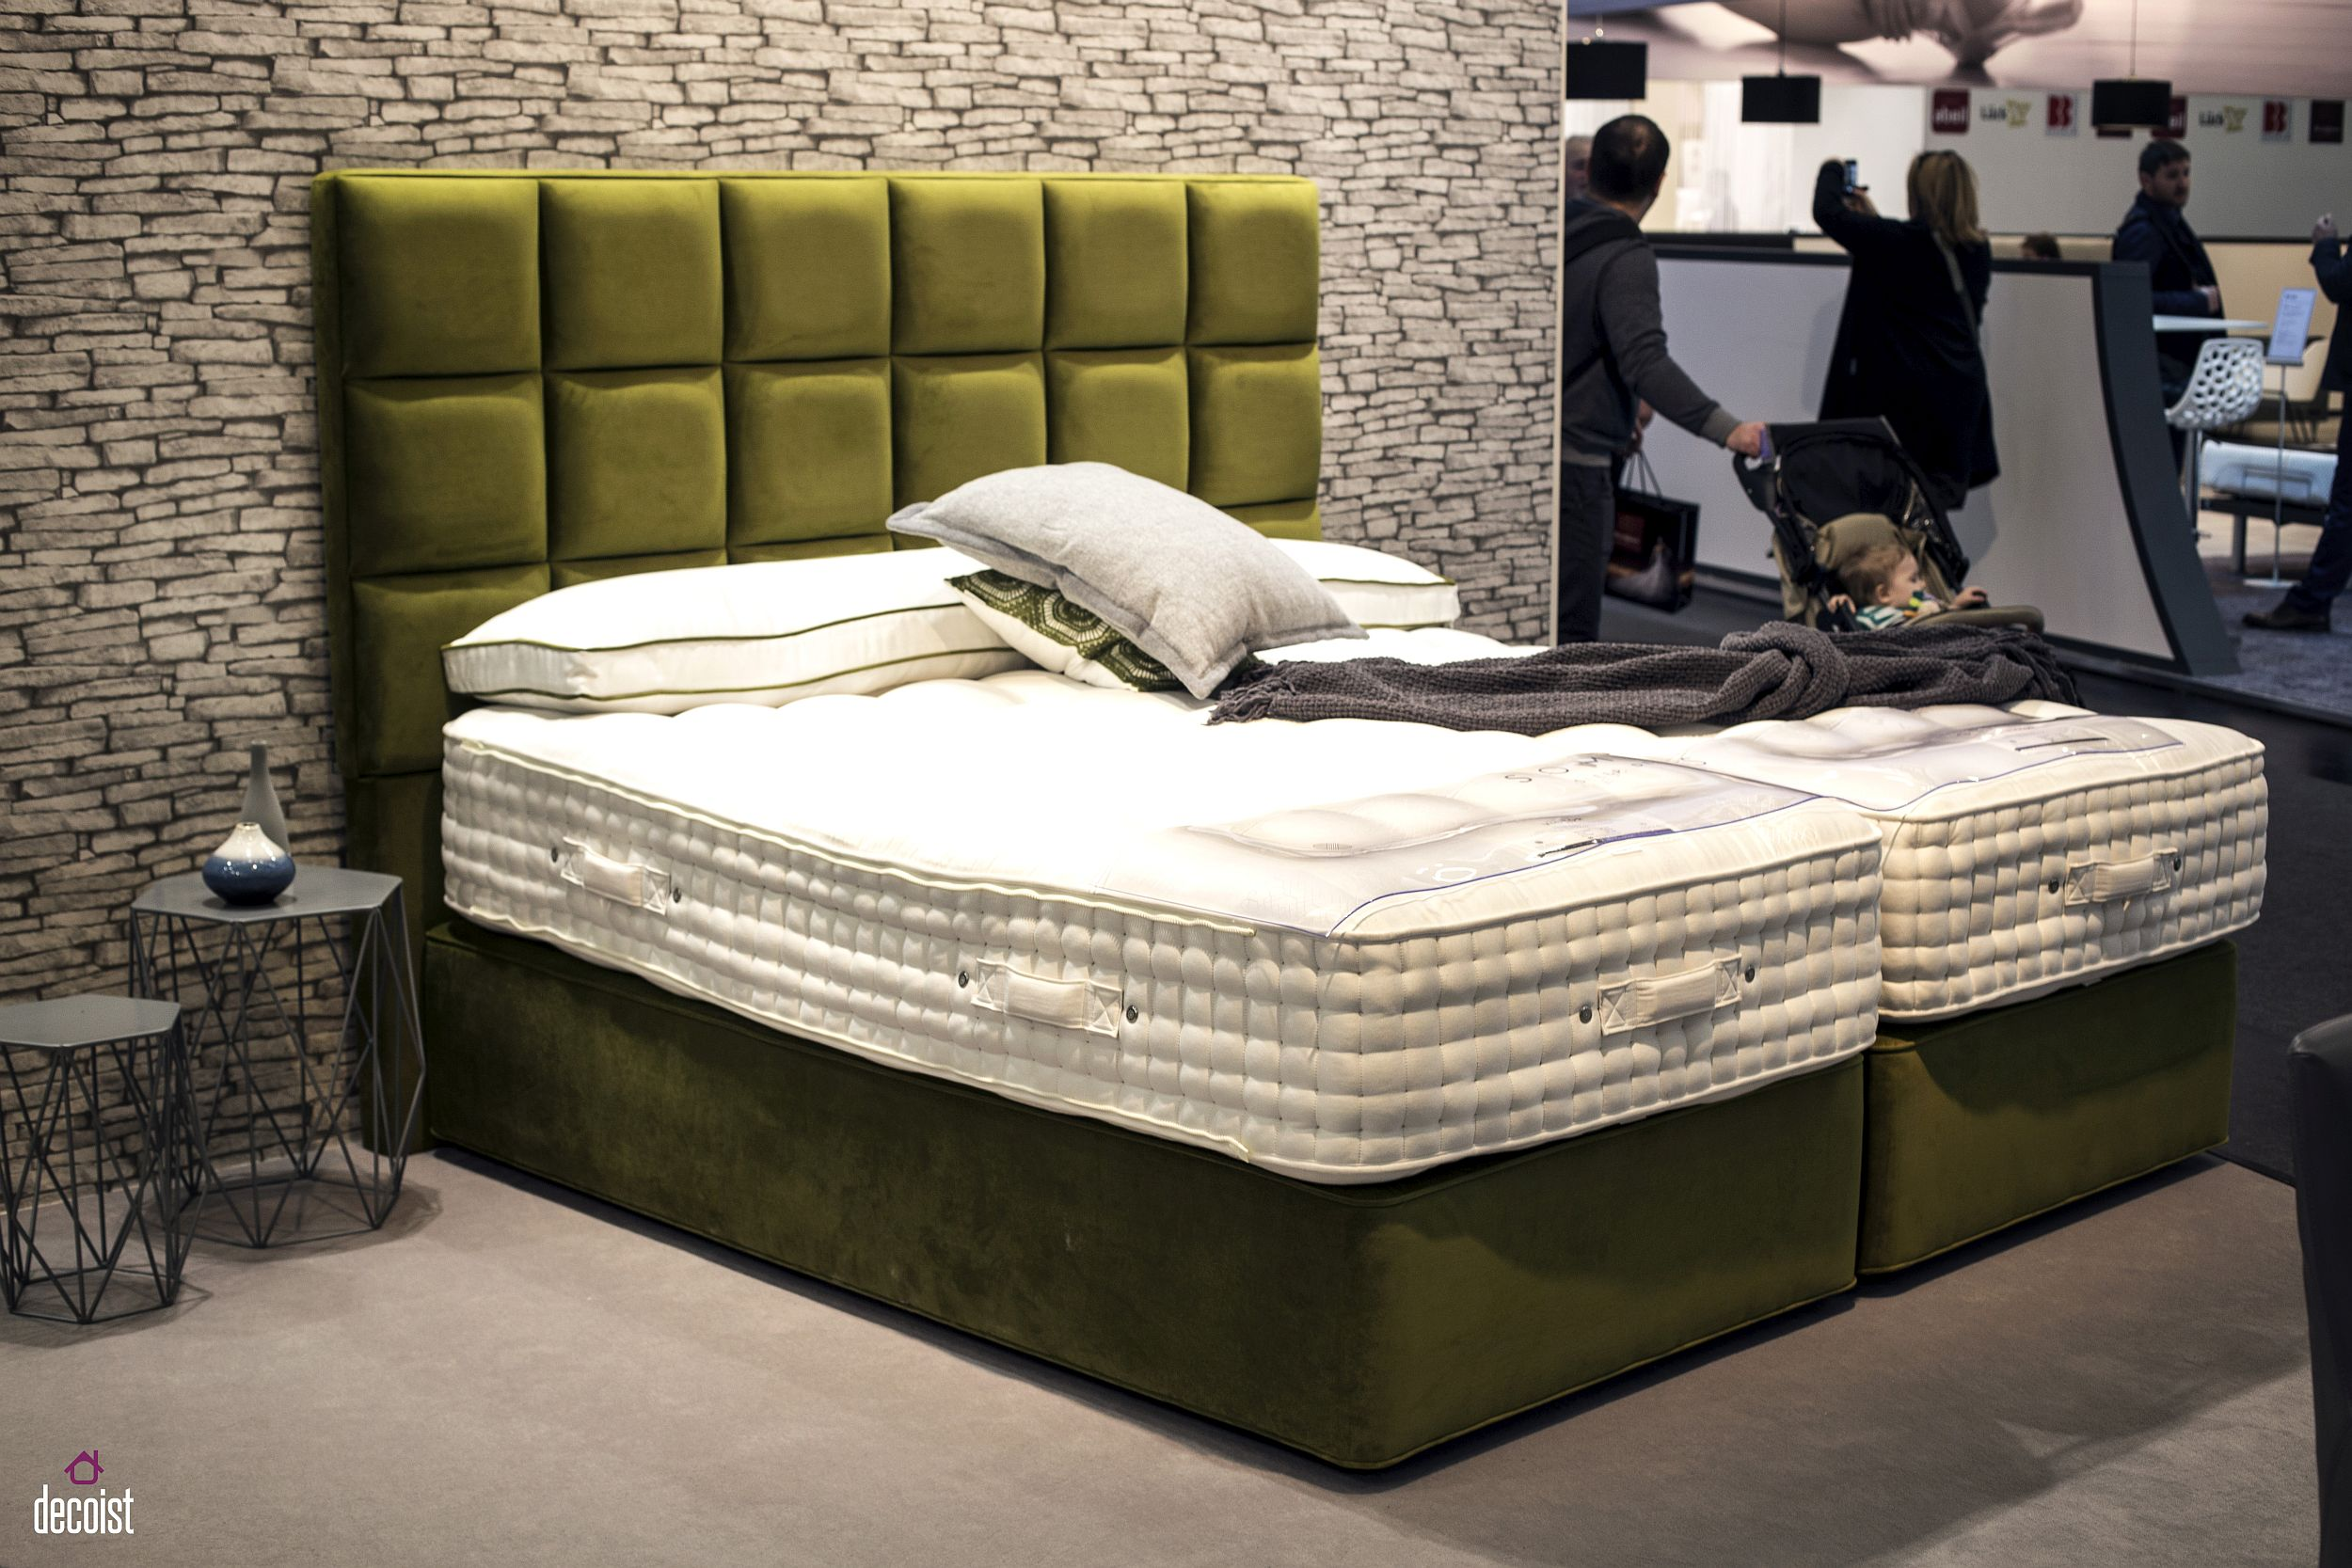 Exquisite-bed-and-headboard-usher-in-both-color-and-contrast-with-ease